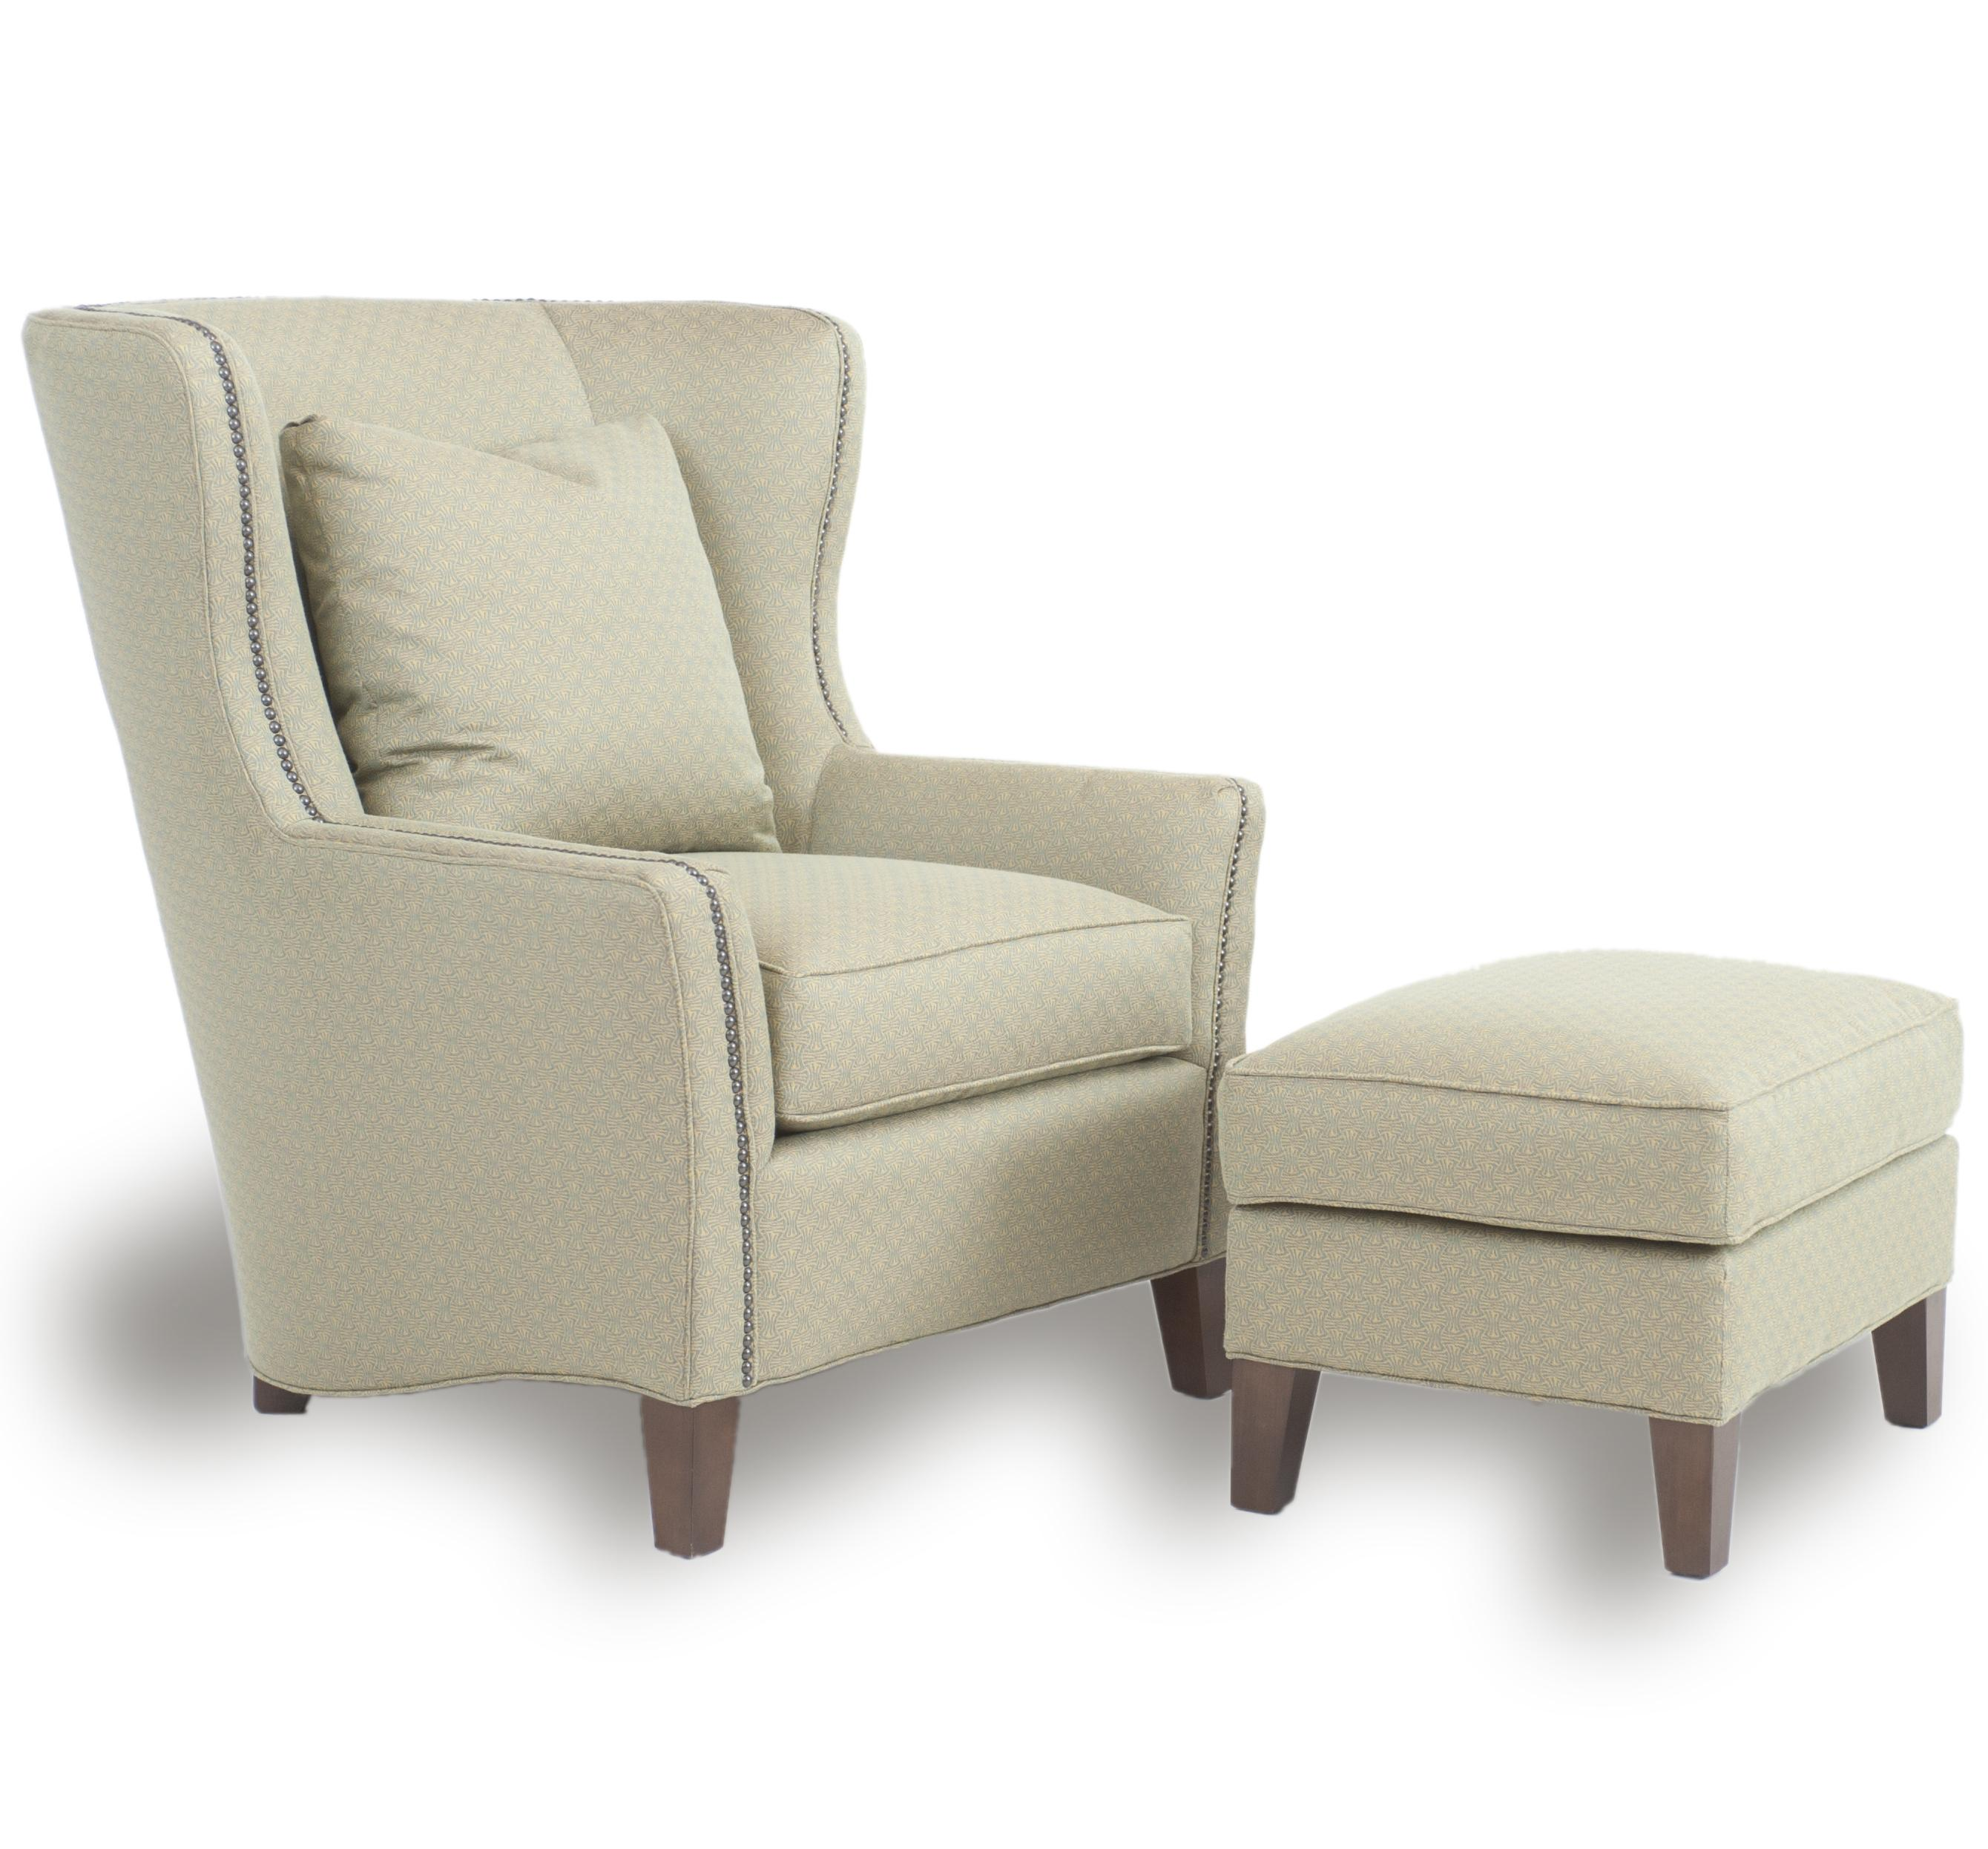 Smith Brothers Accent Chairs And Ottomans Sb Wingback Chair